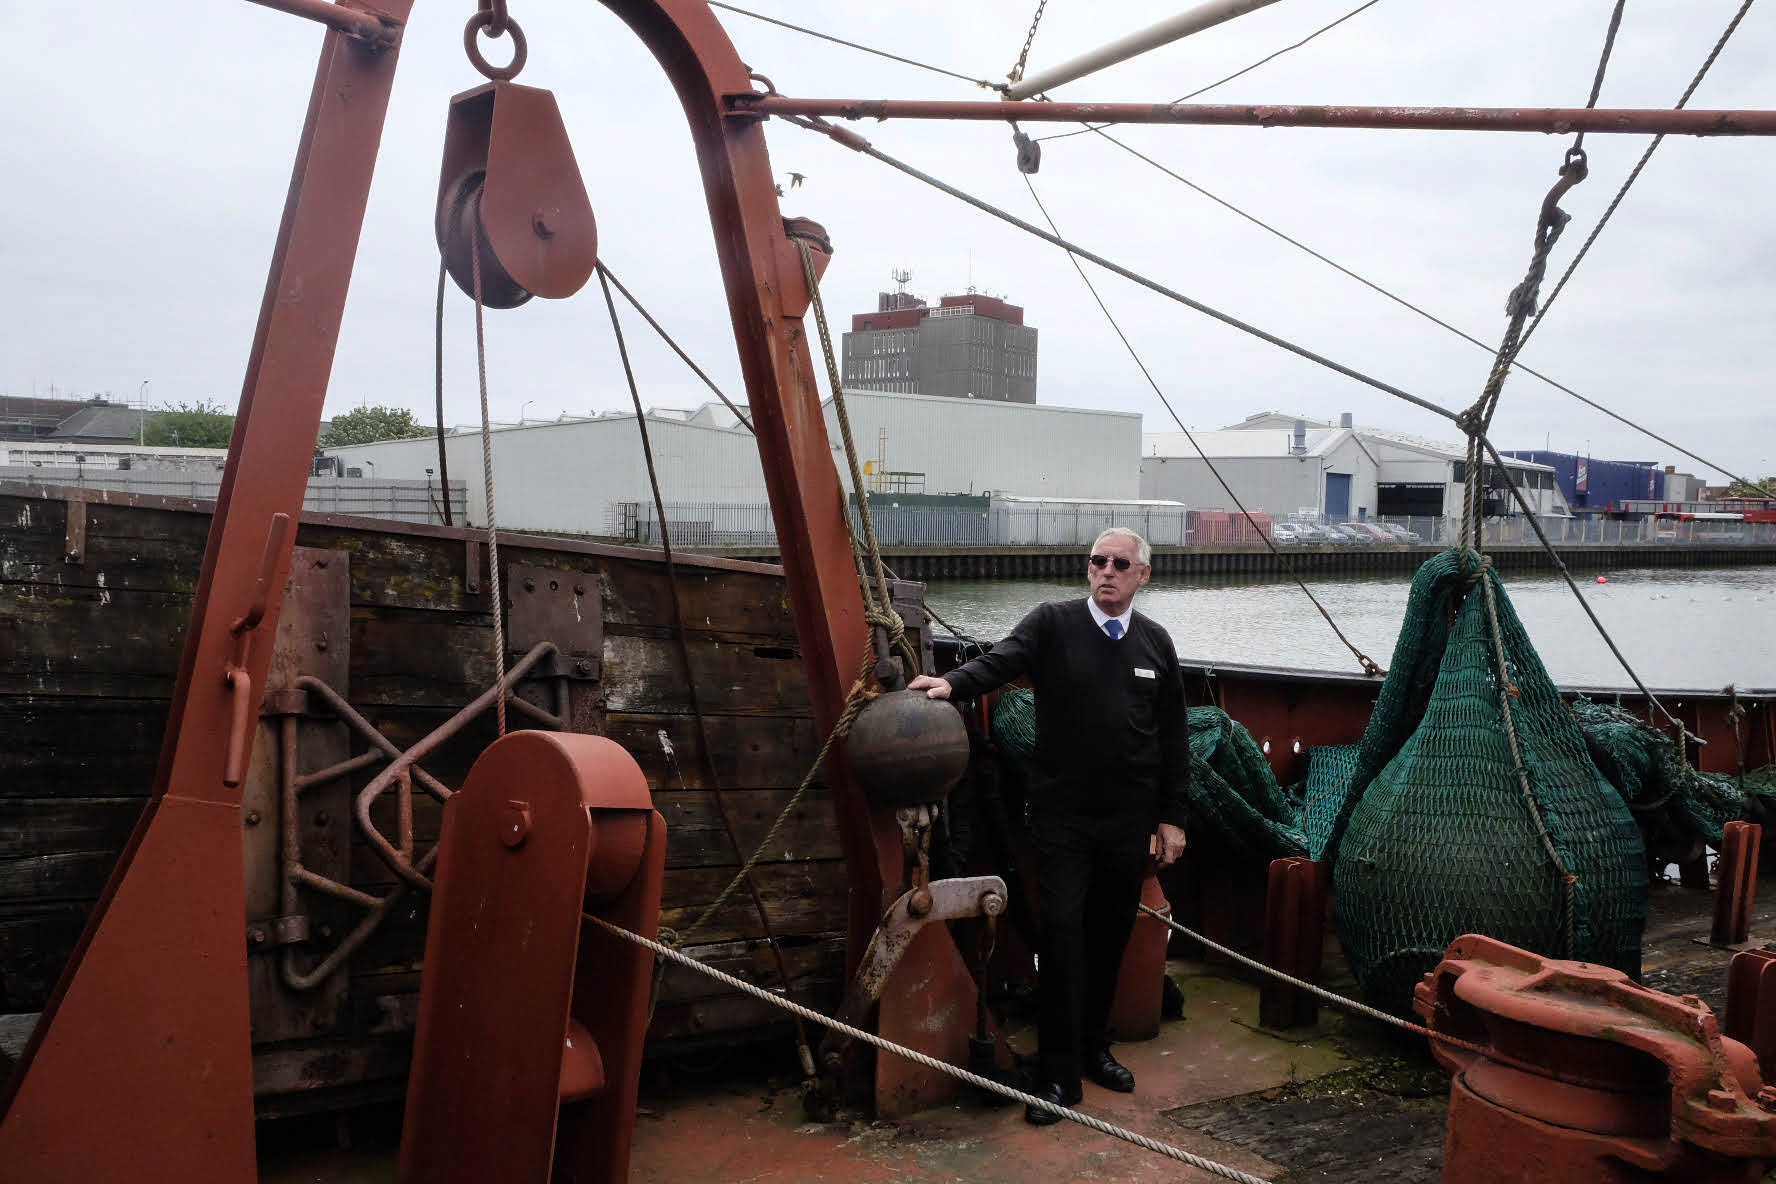 John Vincent conducts a tour on the Ross Tiger, now a part of the Grimsby Heritage Centre in the town of Grimsby, U.K., on May 28, 2015.